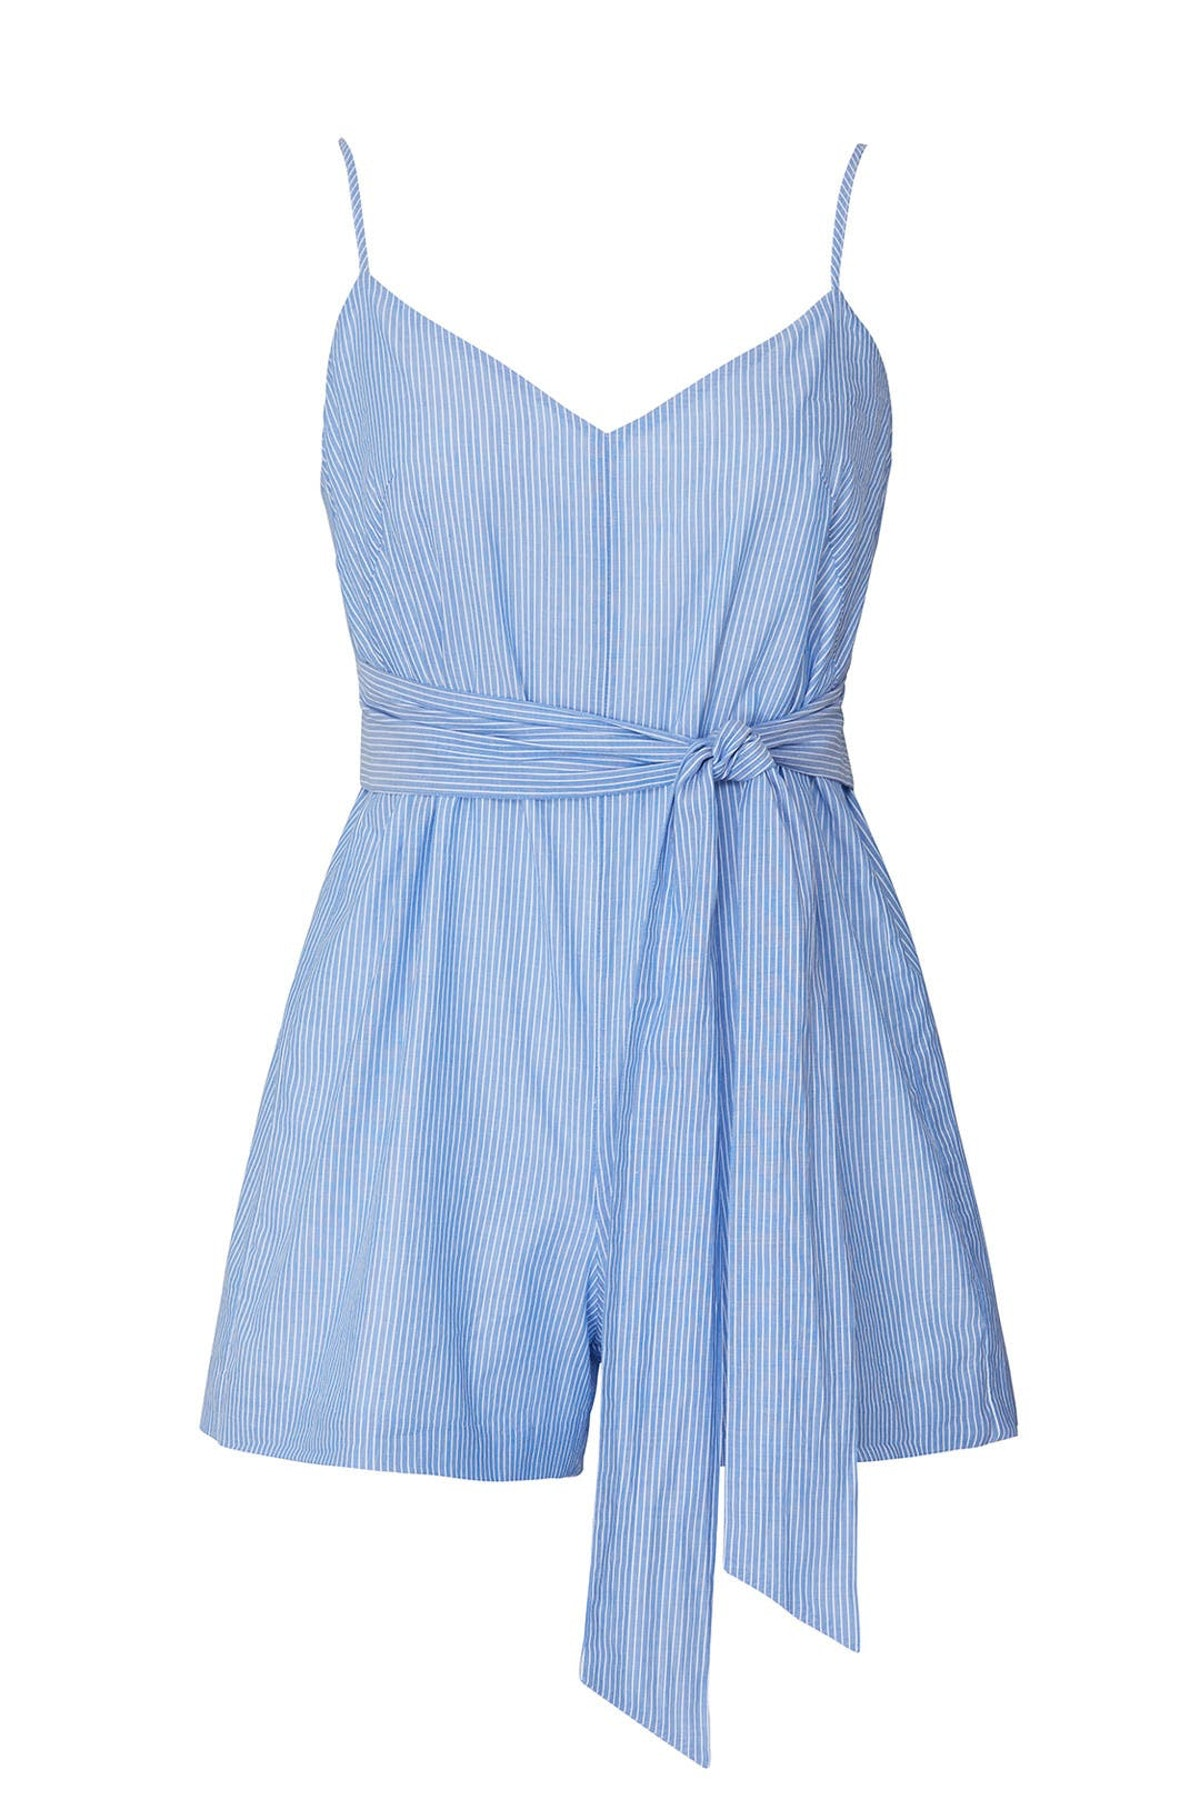 Xuan blue stripe romper from Club Monaco, available to shop or rent via Rent The Runway.